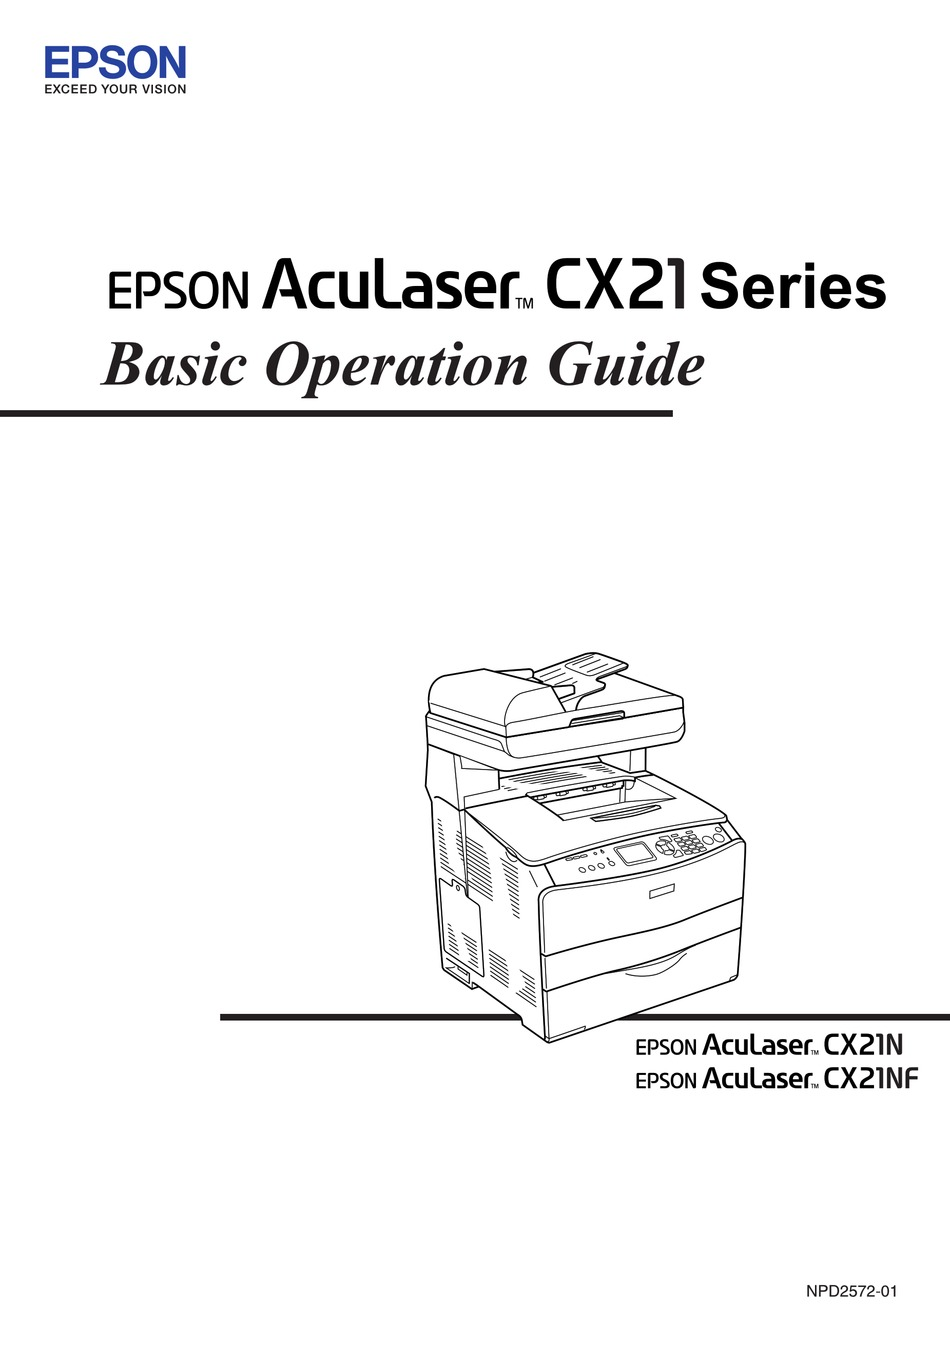 EPSON ACULASER CX21NF OPERATION MANUAL Pdf Download